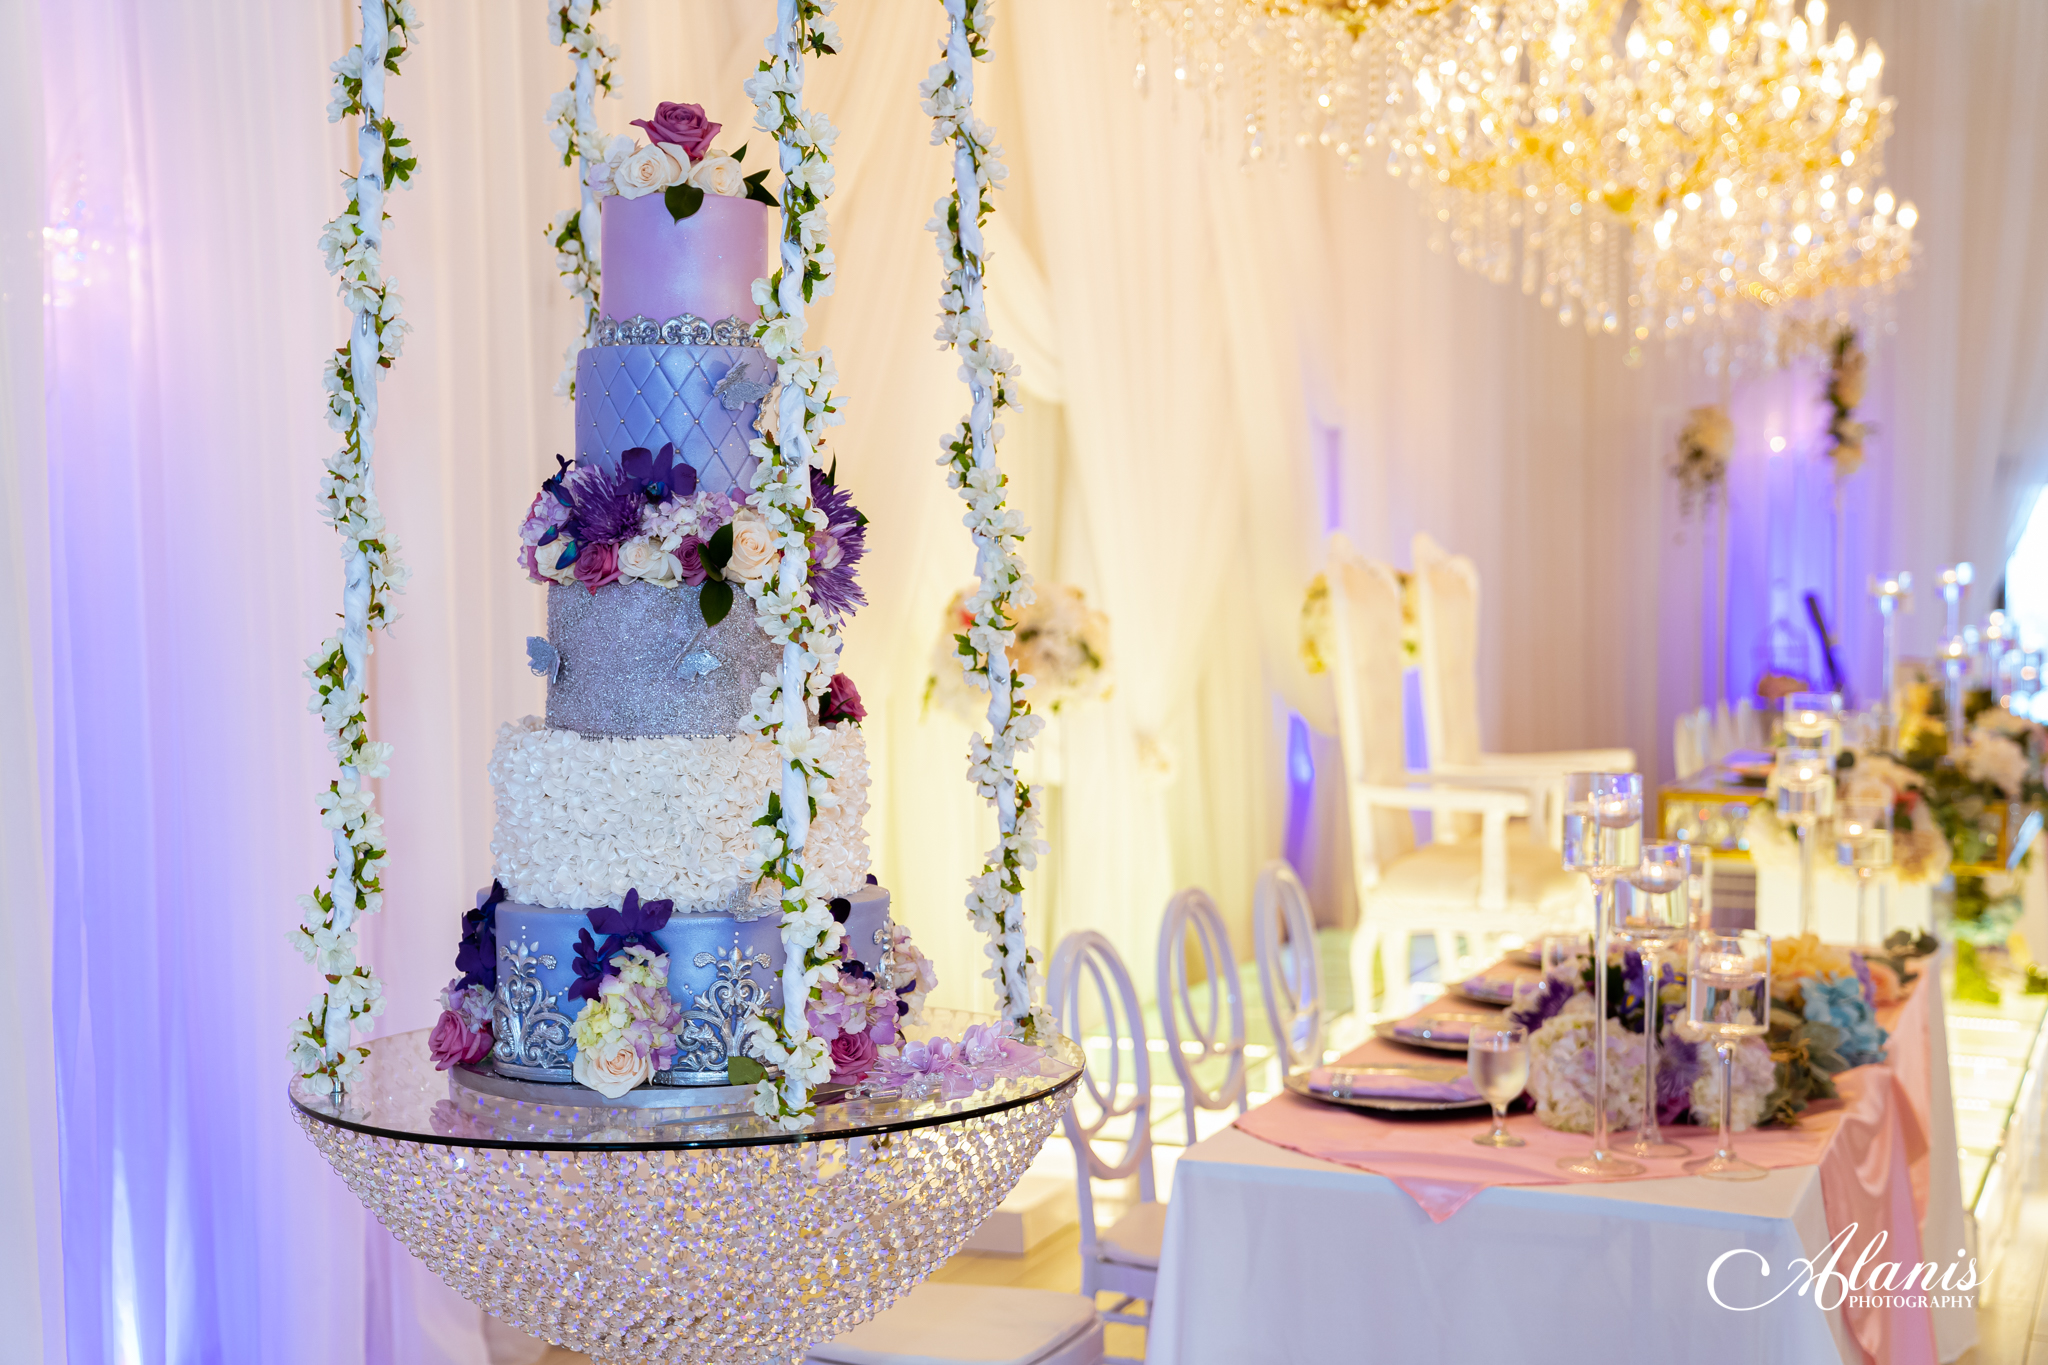 LeVenue close up of cake swing and front ballroom tables